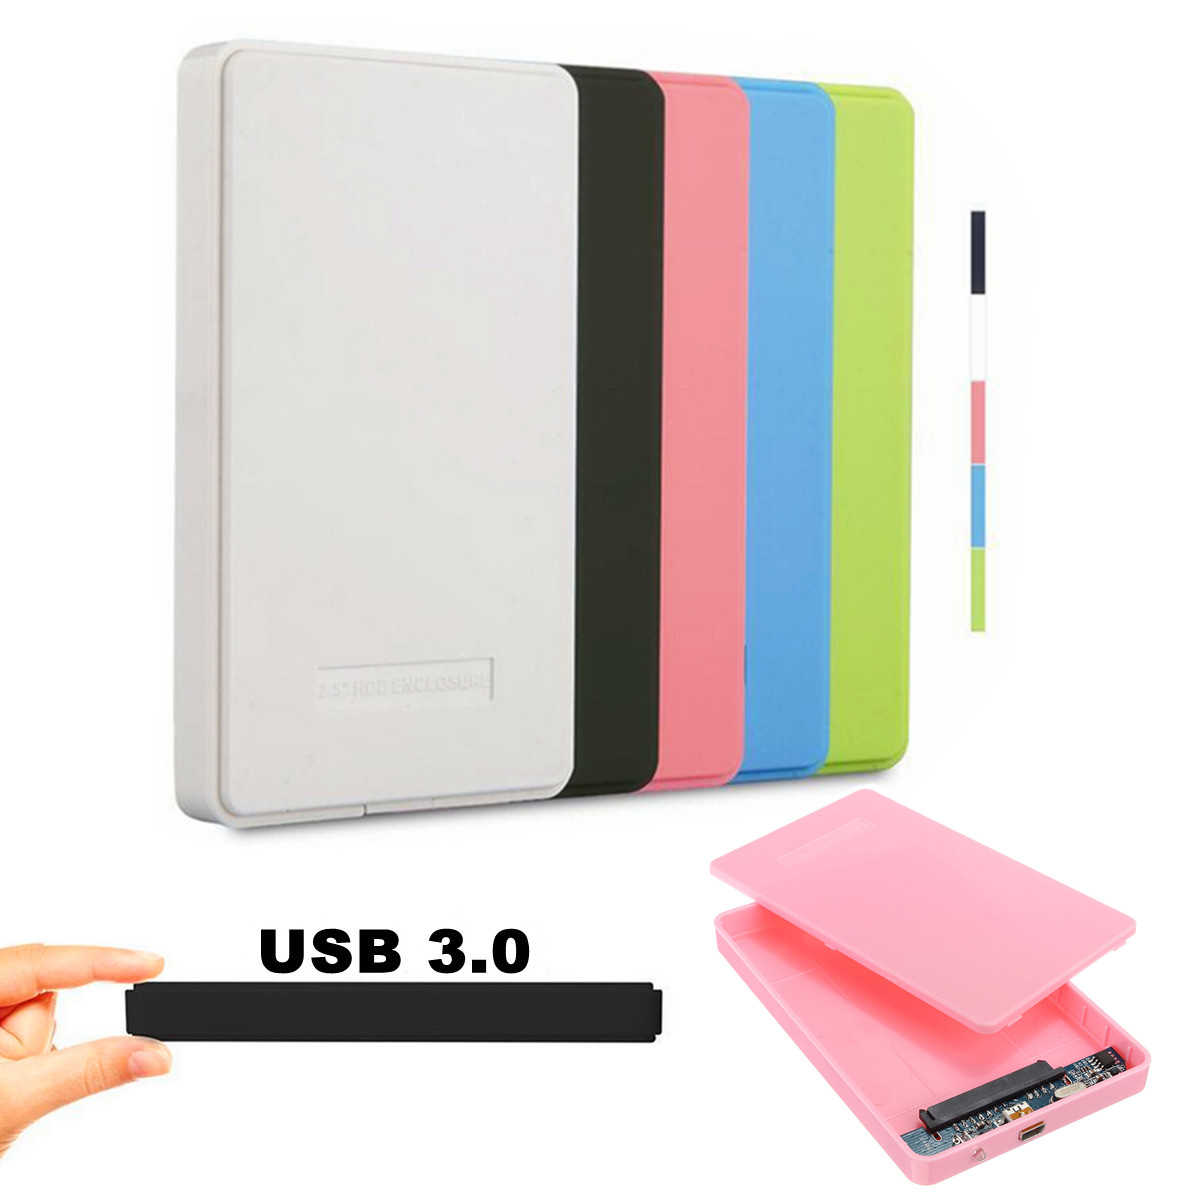 New Useful Slim and Portable USB 3.0 Enclosure External Hard Case for SATA 2.5 Hard Disk Drives HDD desktop laptop Colorful(China (Mainland))